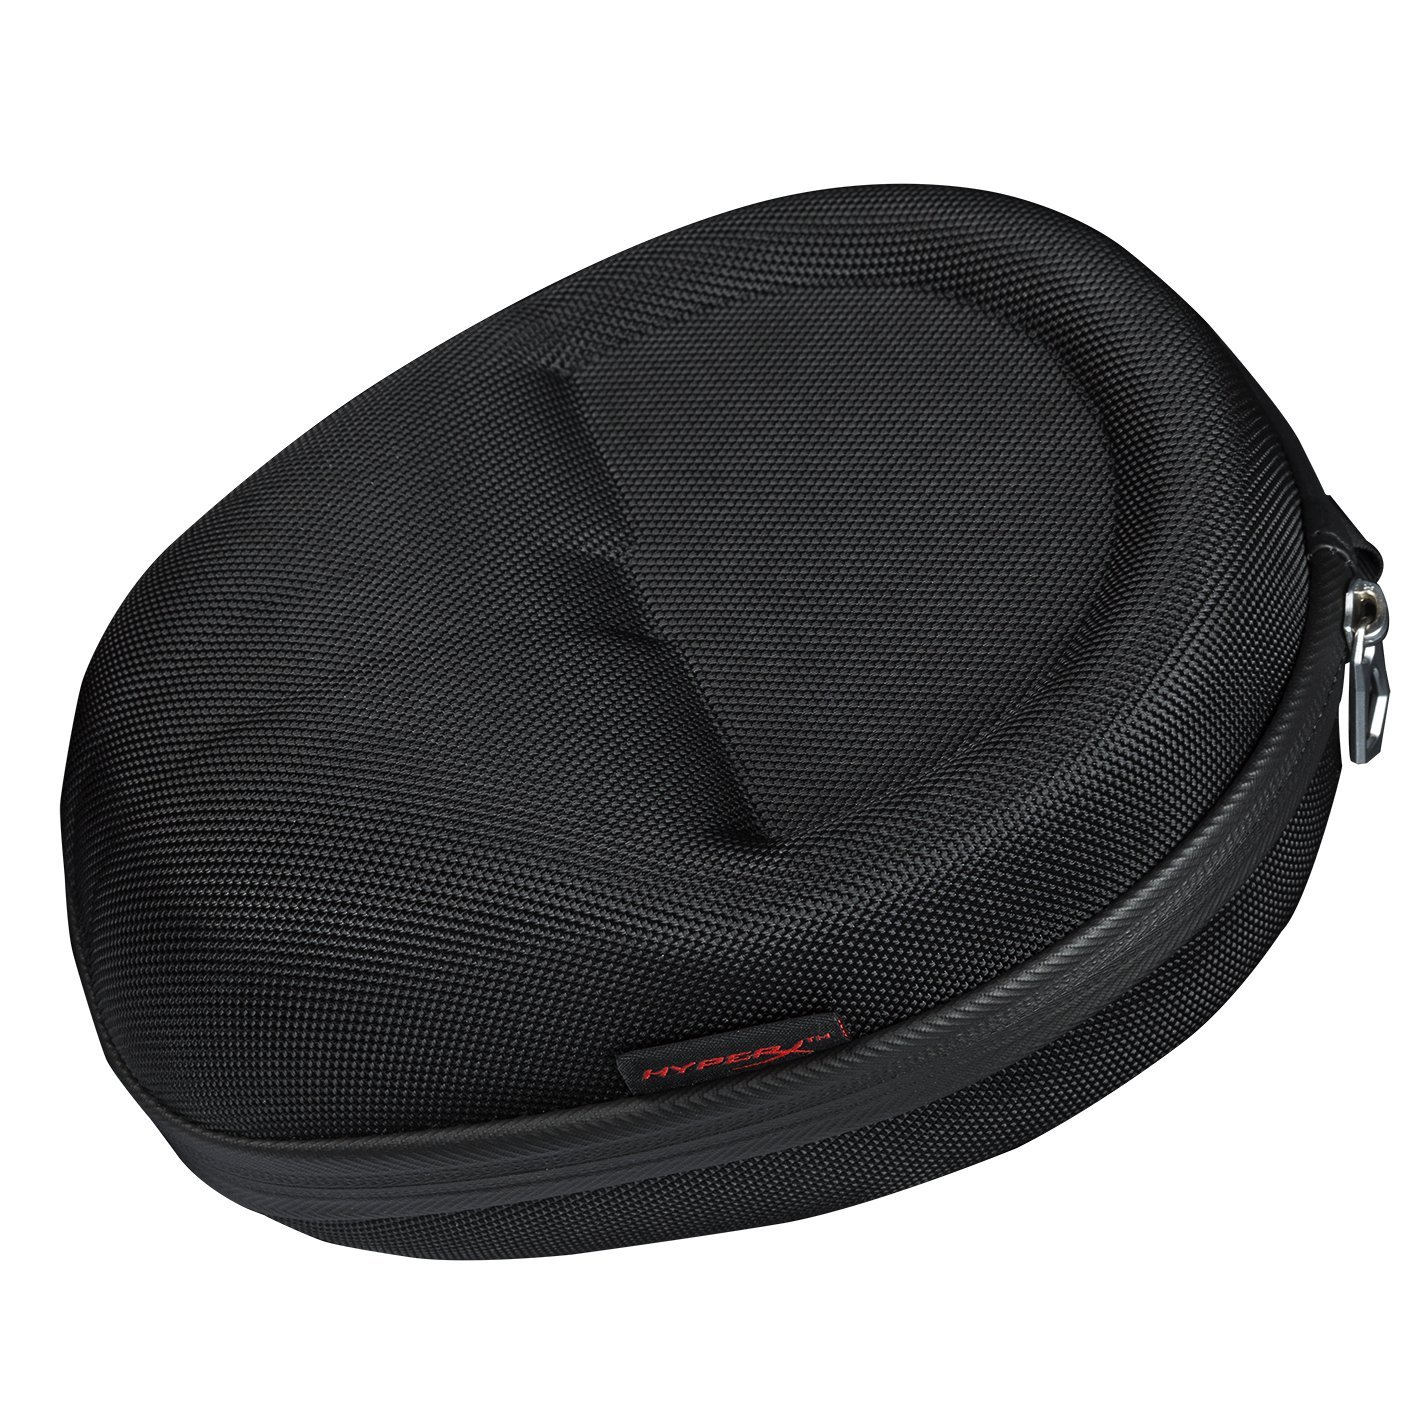 HyperX Cloud Carrying Case